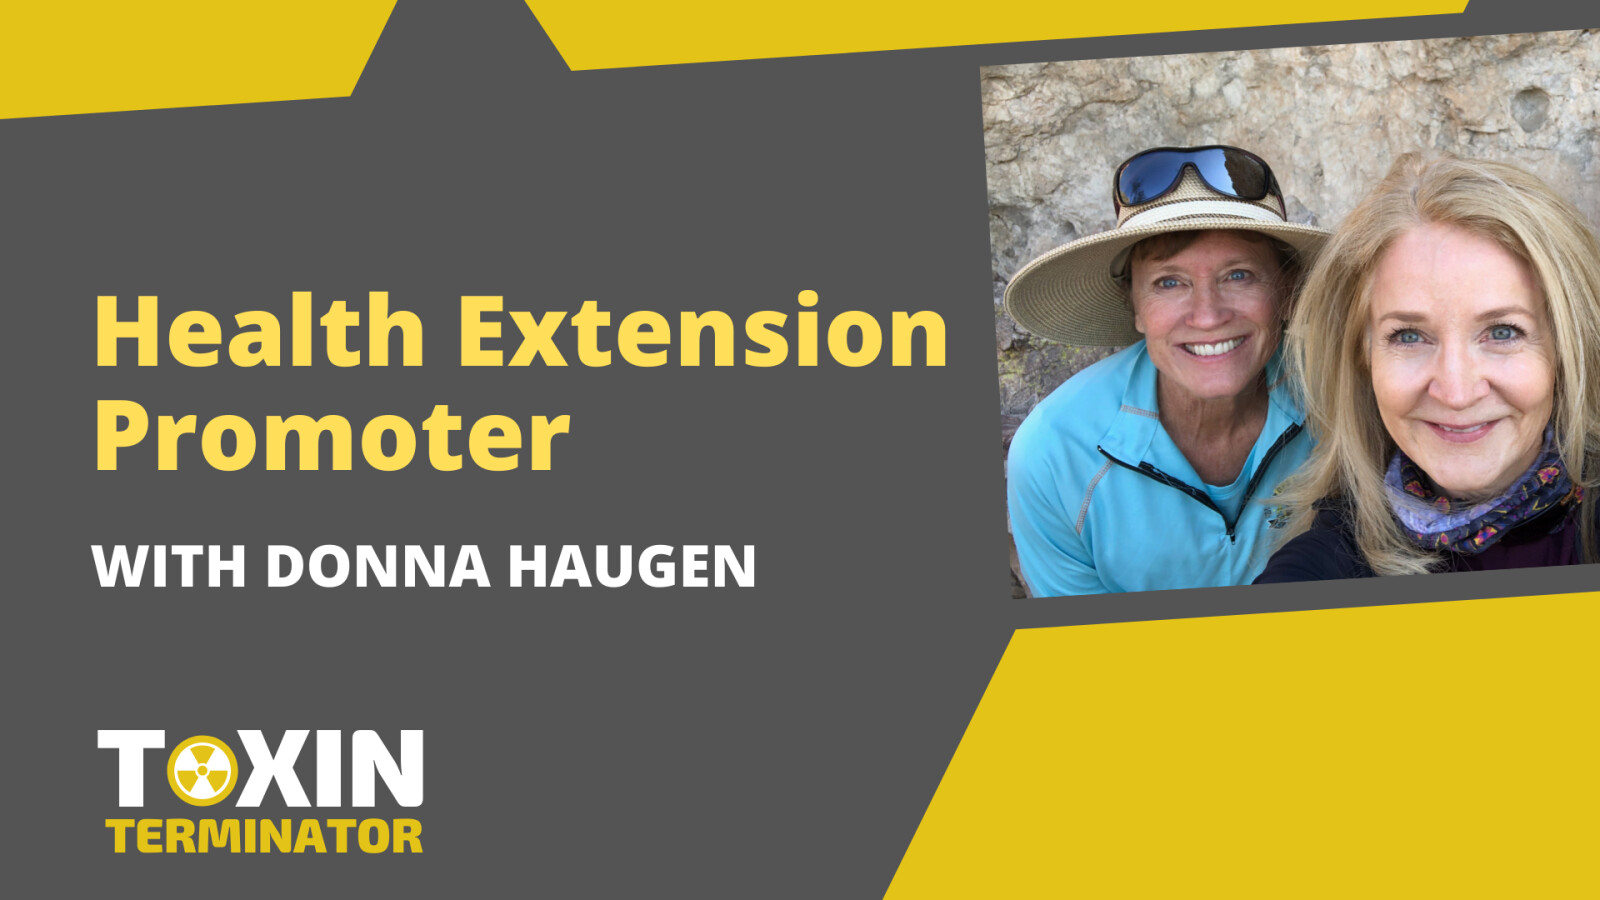 Health Extension Promoter with Donna Haugen